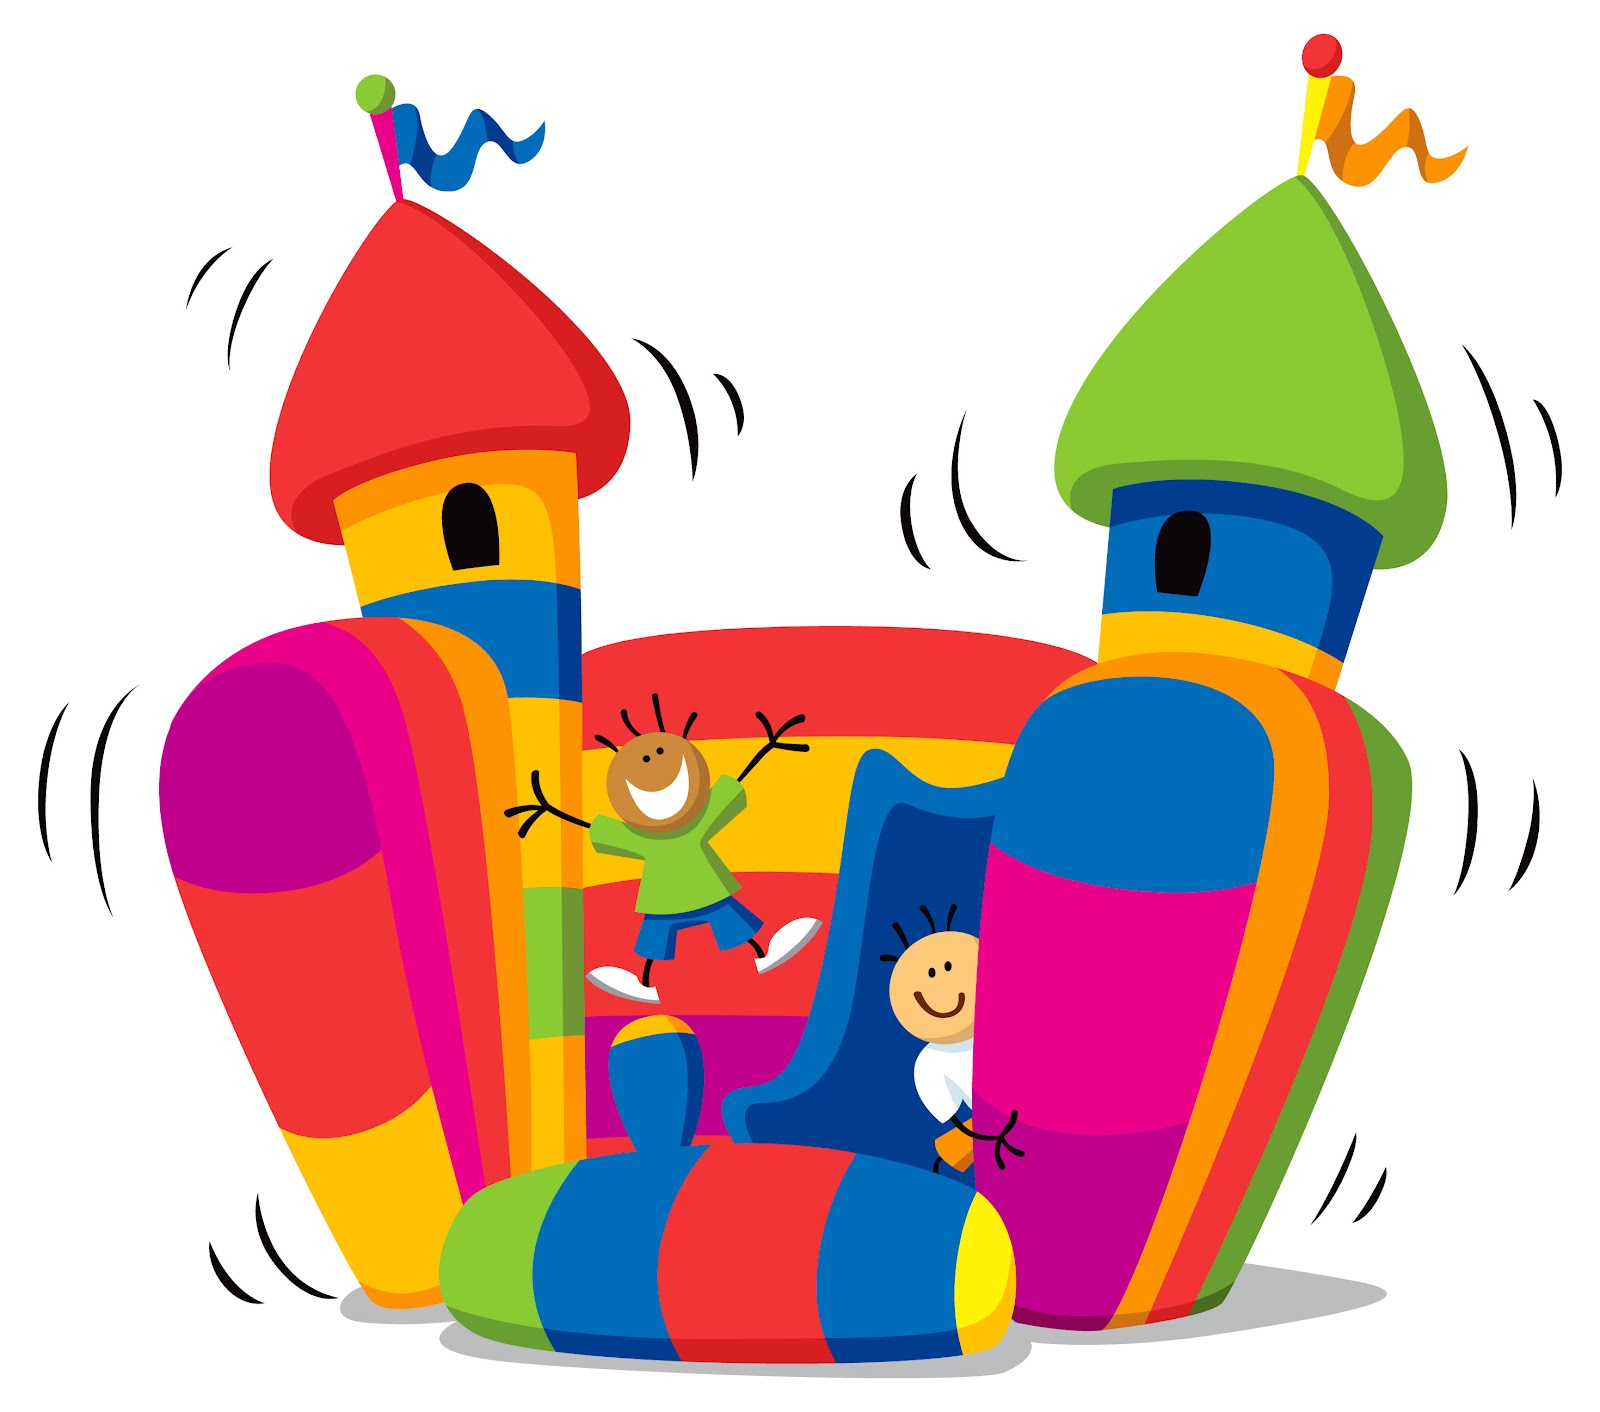 Bouncy castle clipart.